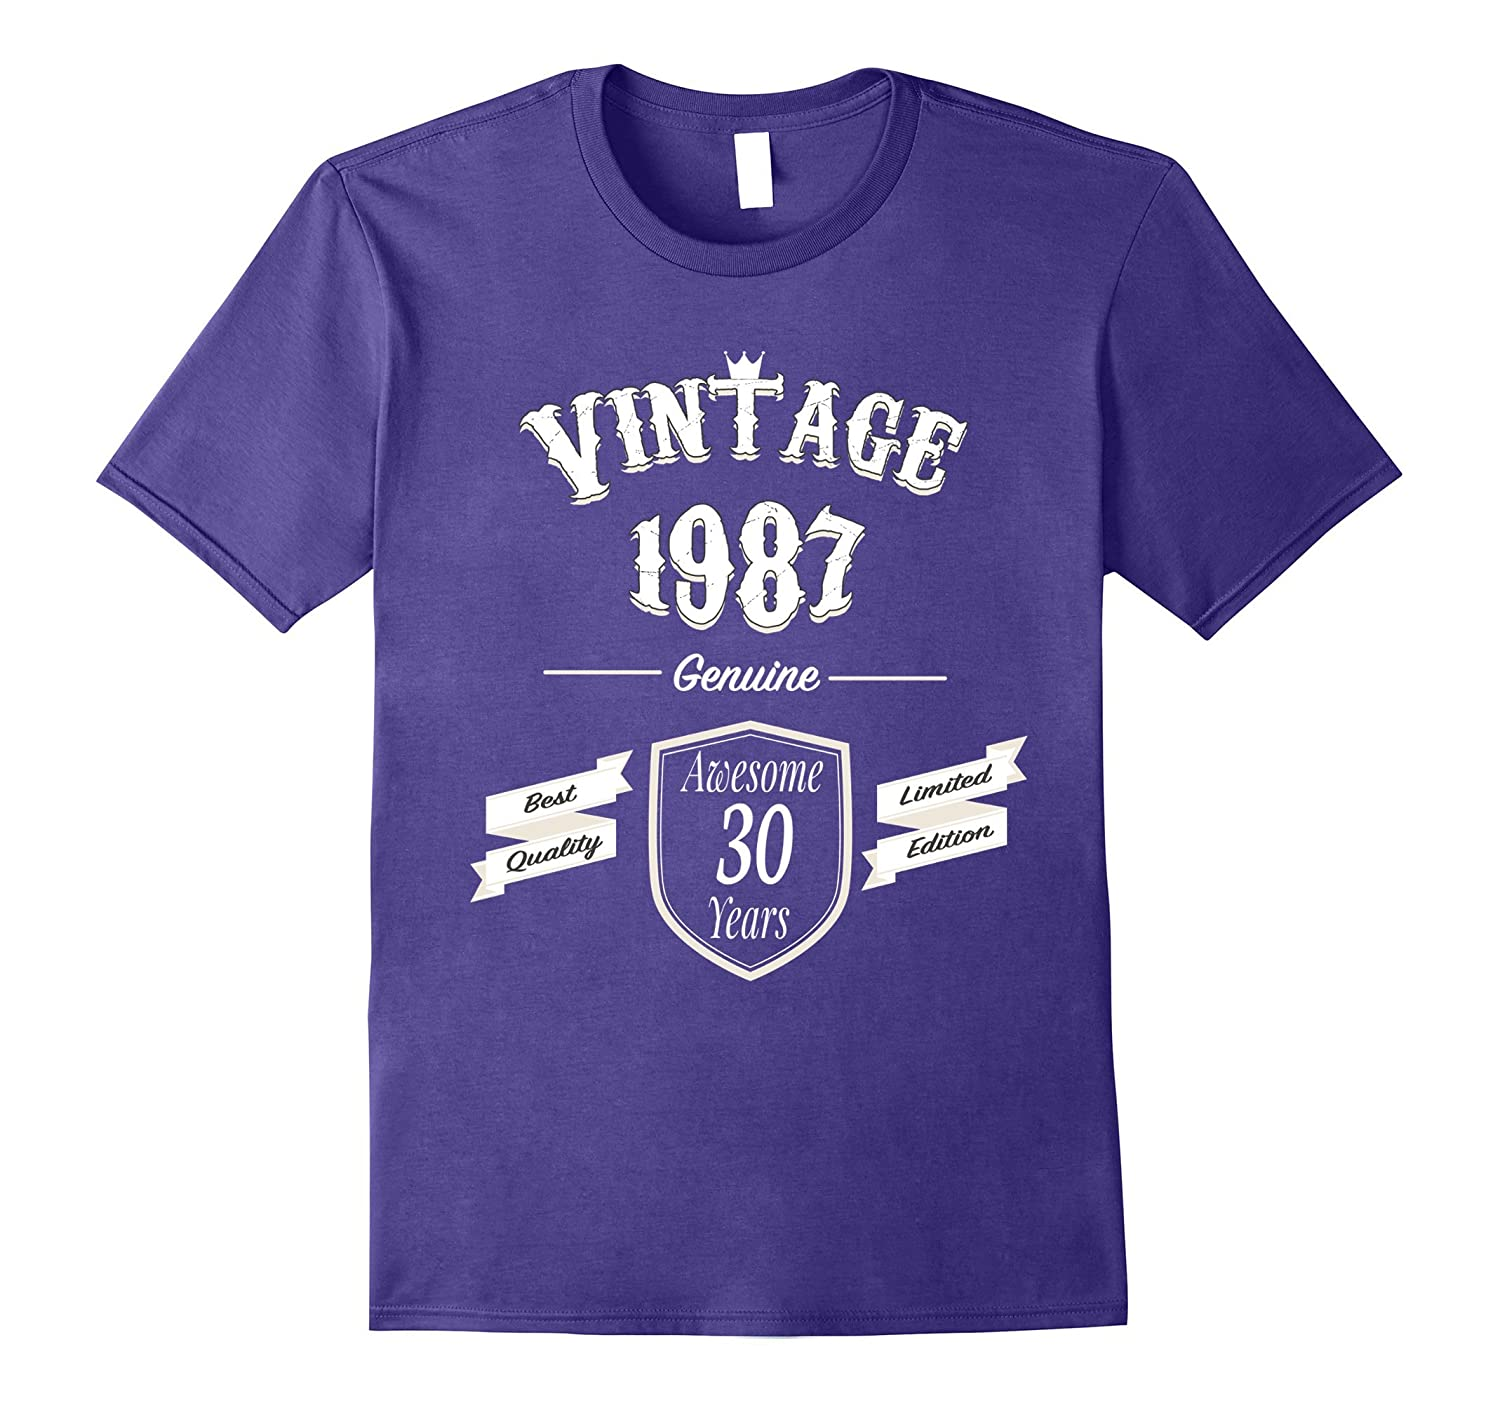 30th Birthday Gift for Men and Women Tshirt, Vintage 1987-4LVS